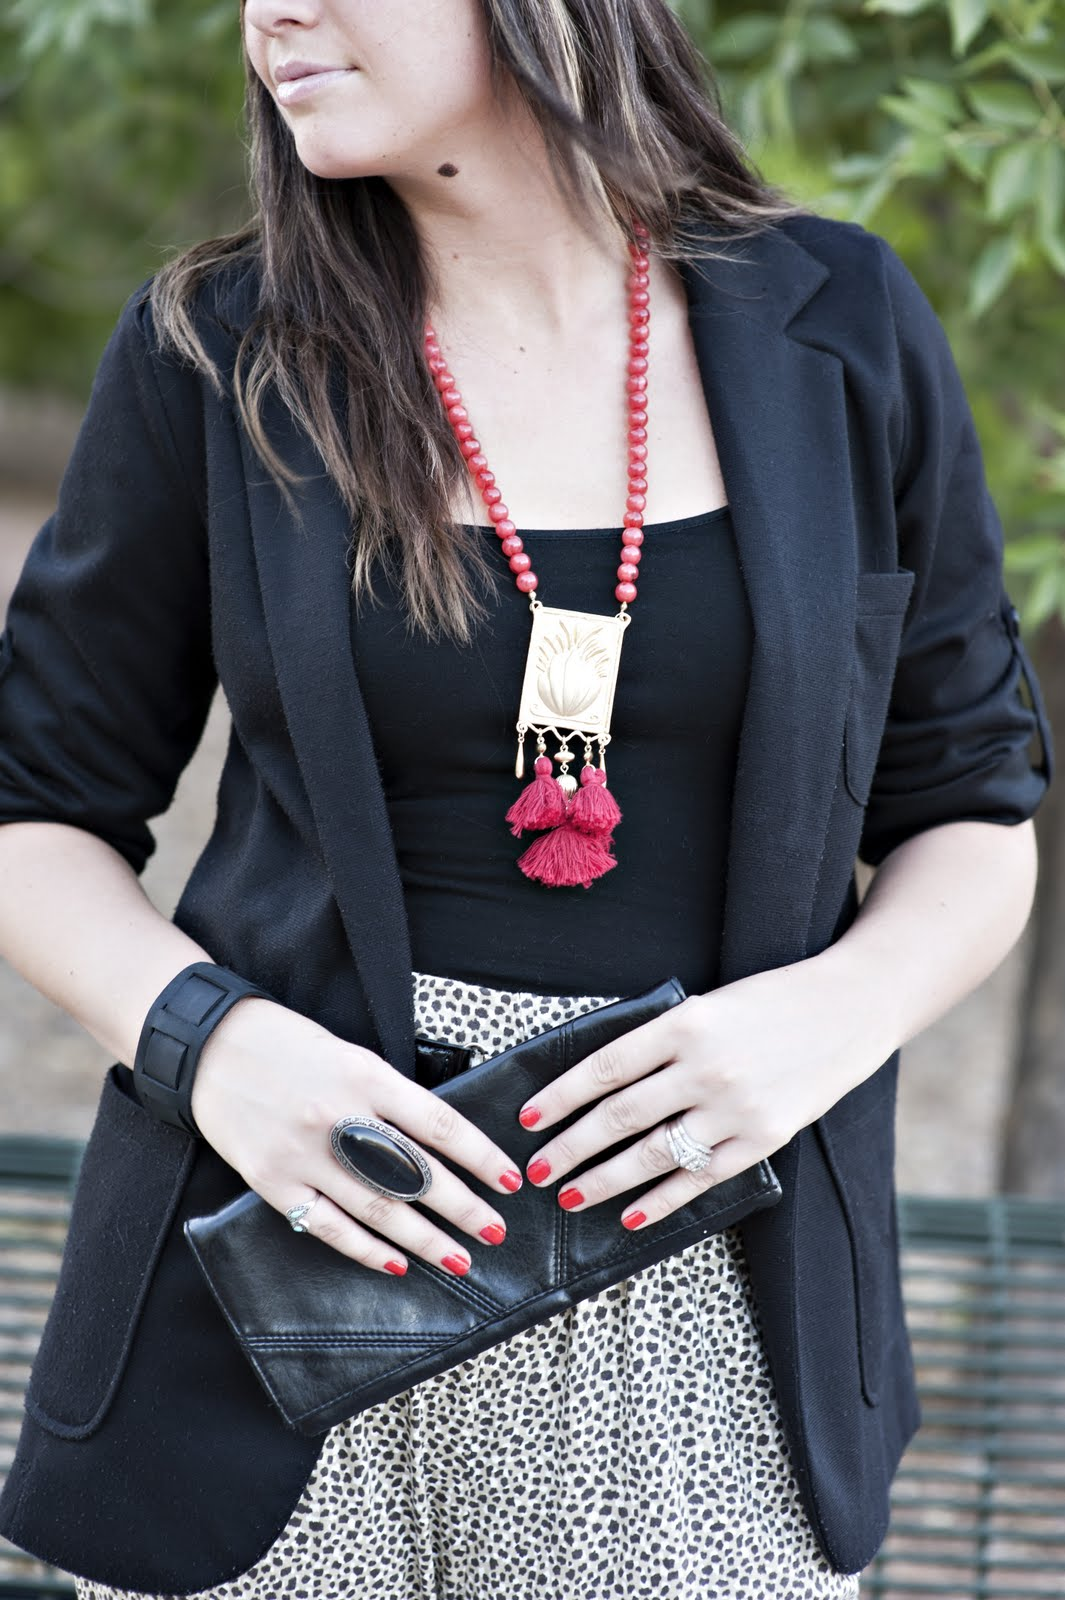 Red Necklace, Black handbag